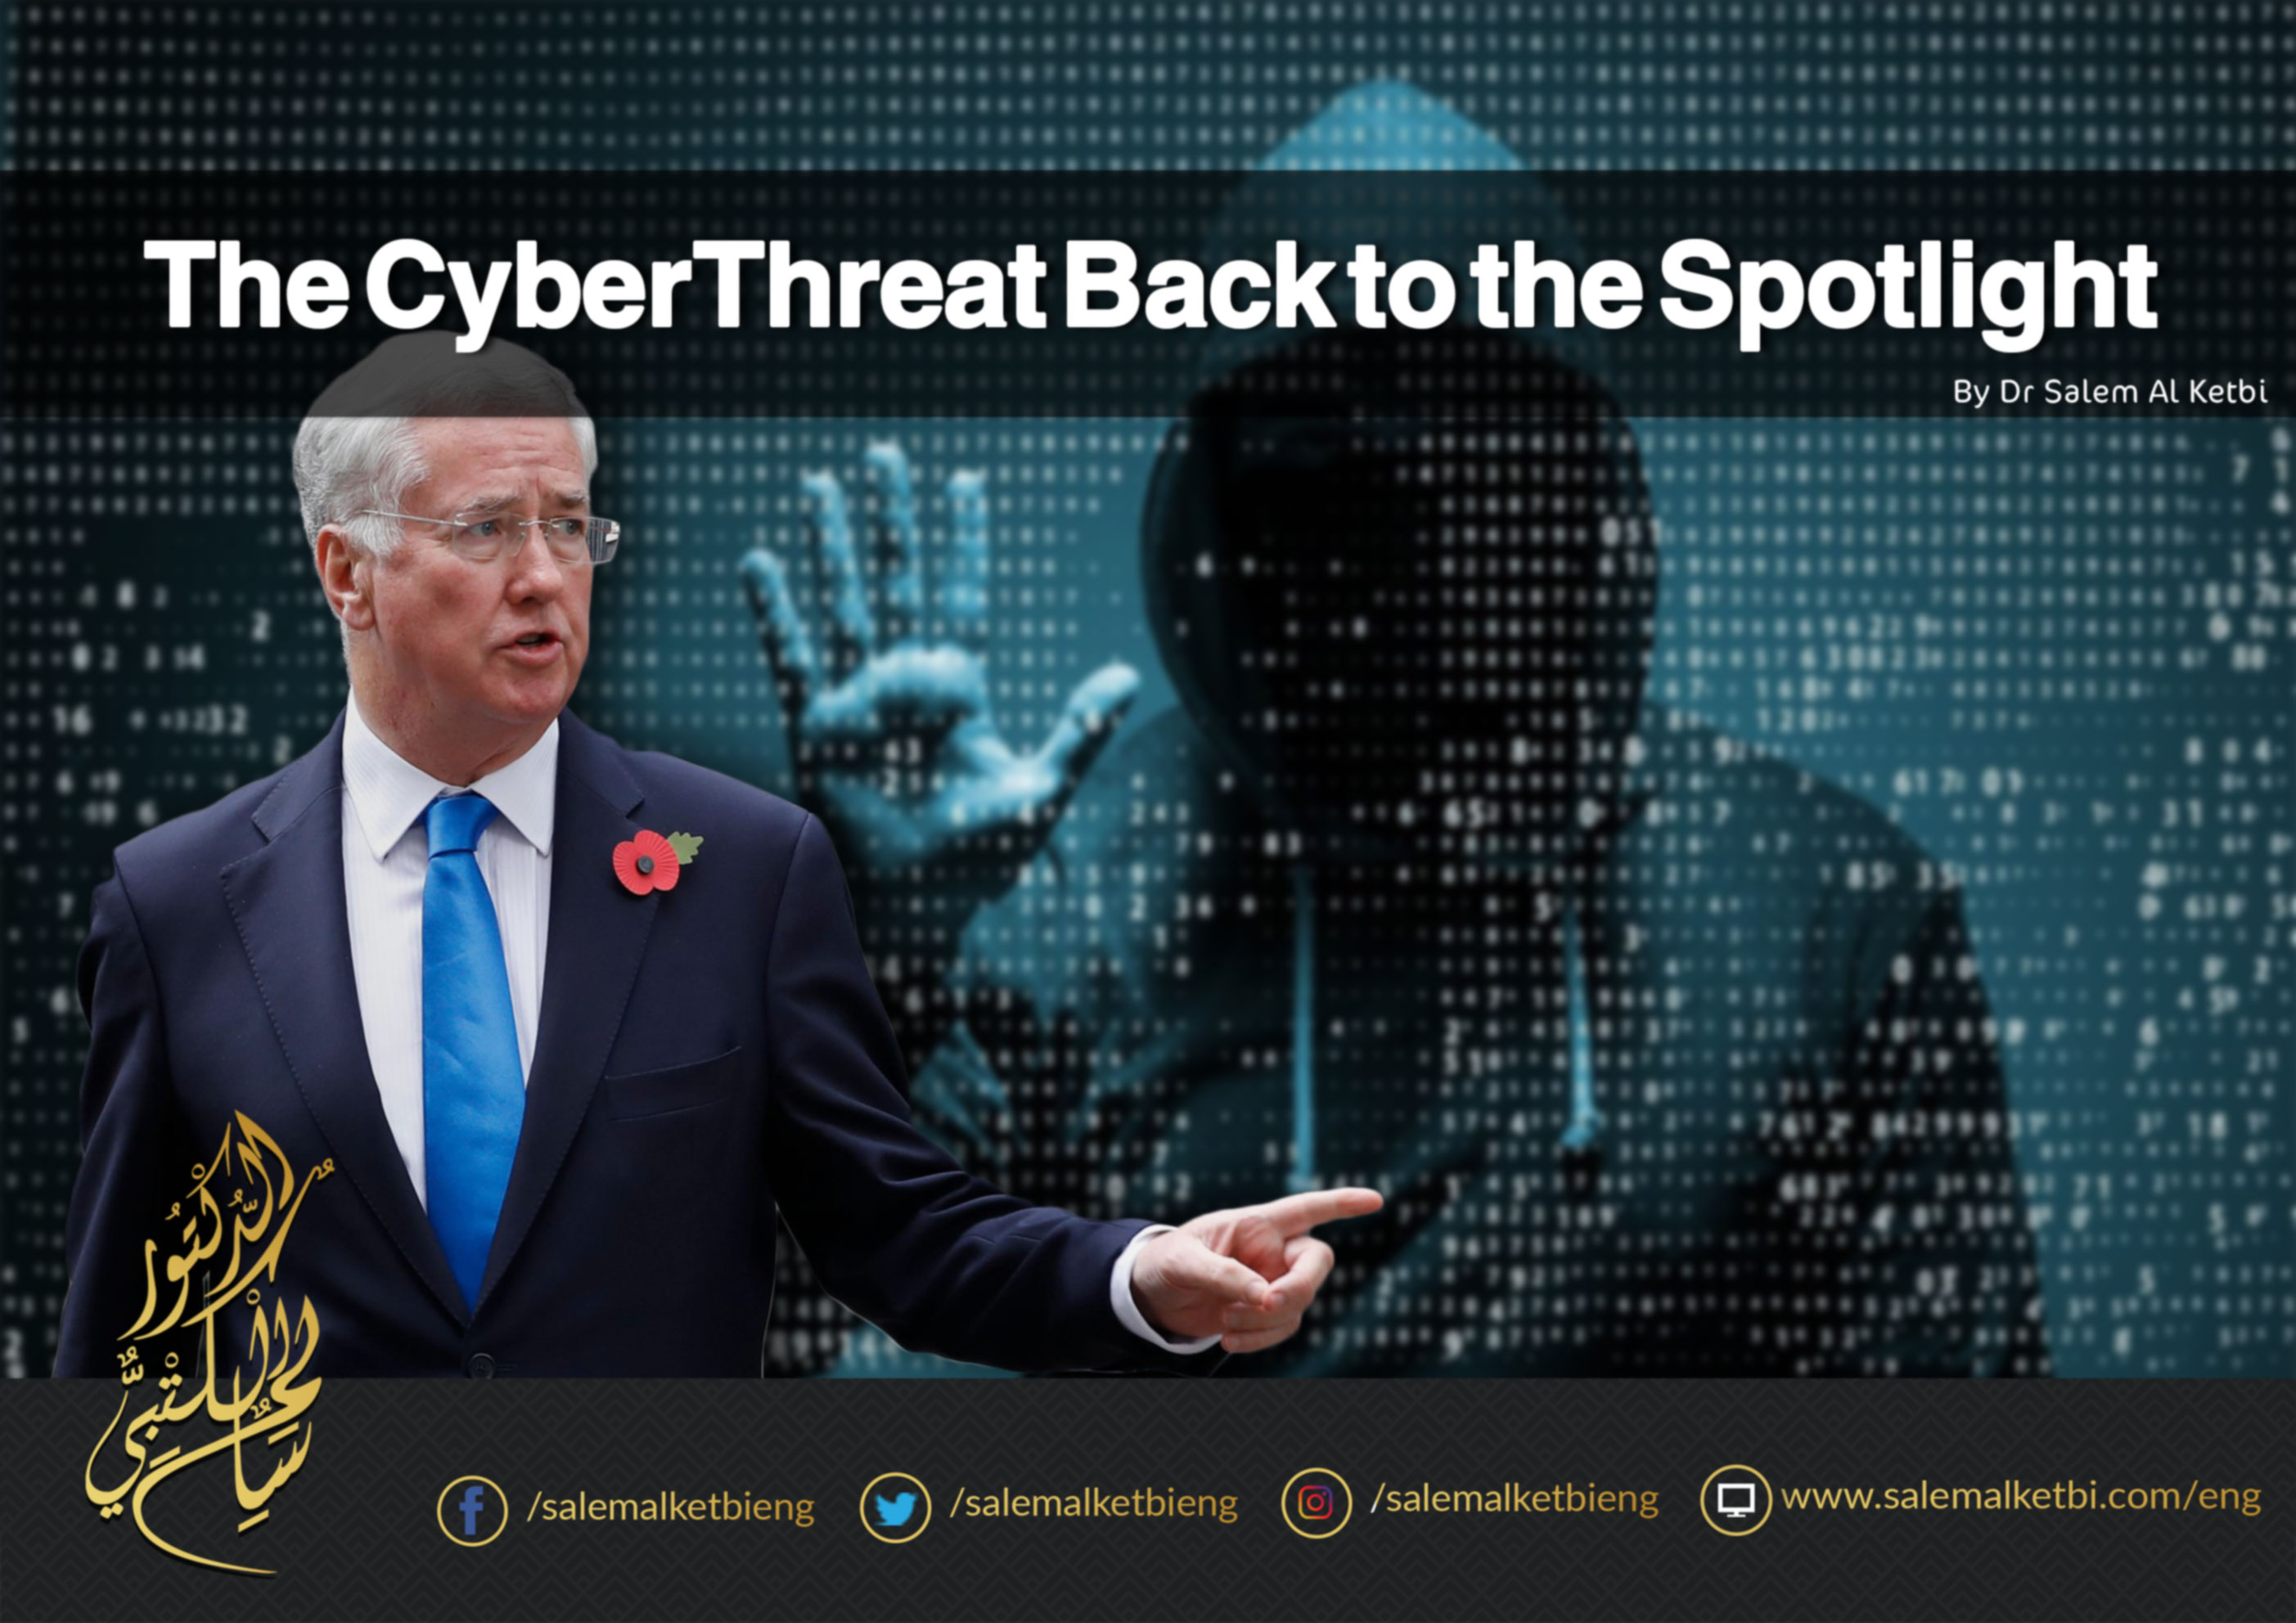 The Cyber Threat Back to the Spotlight